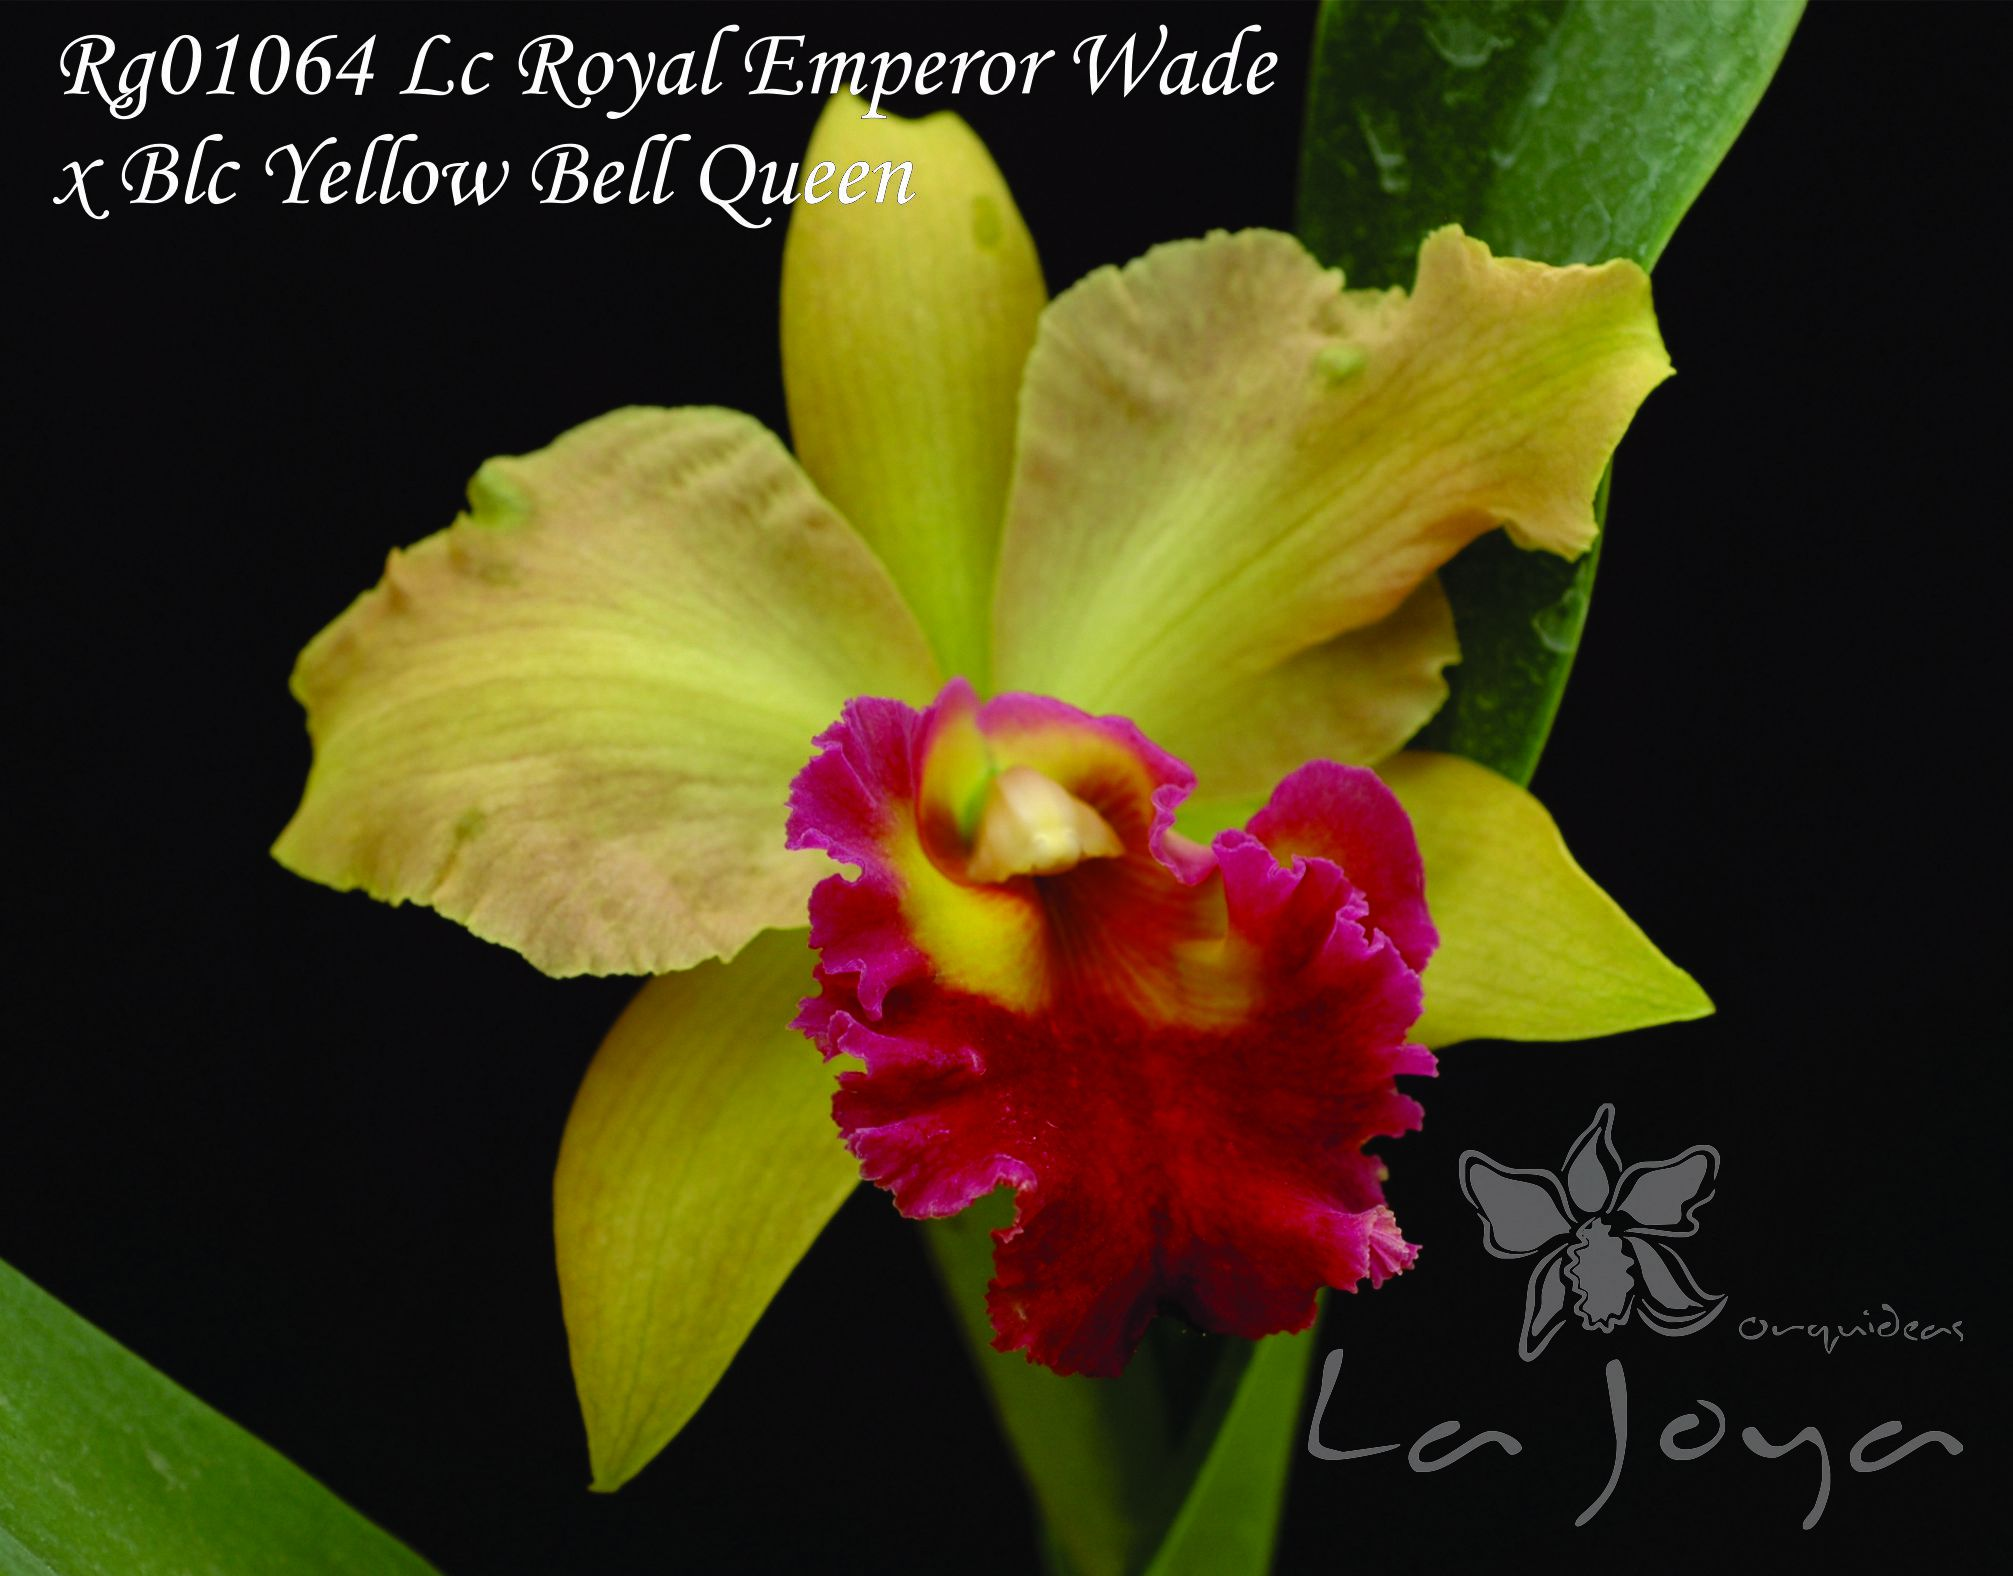 RG01064 Lc. Royal Emperor Wade x Blc. Yellow Bell Queen